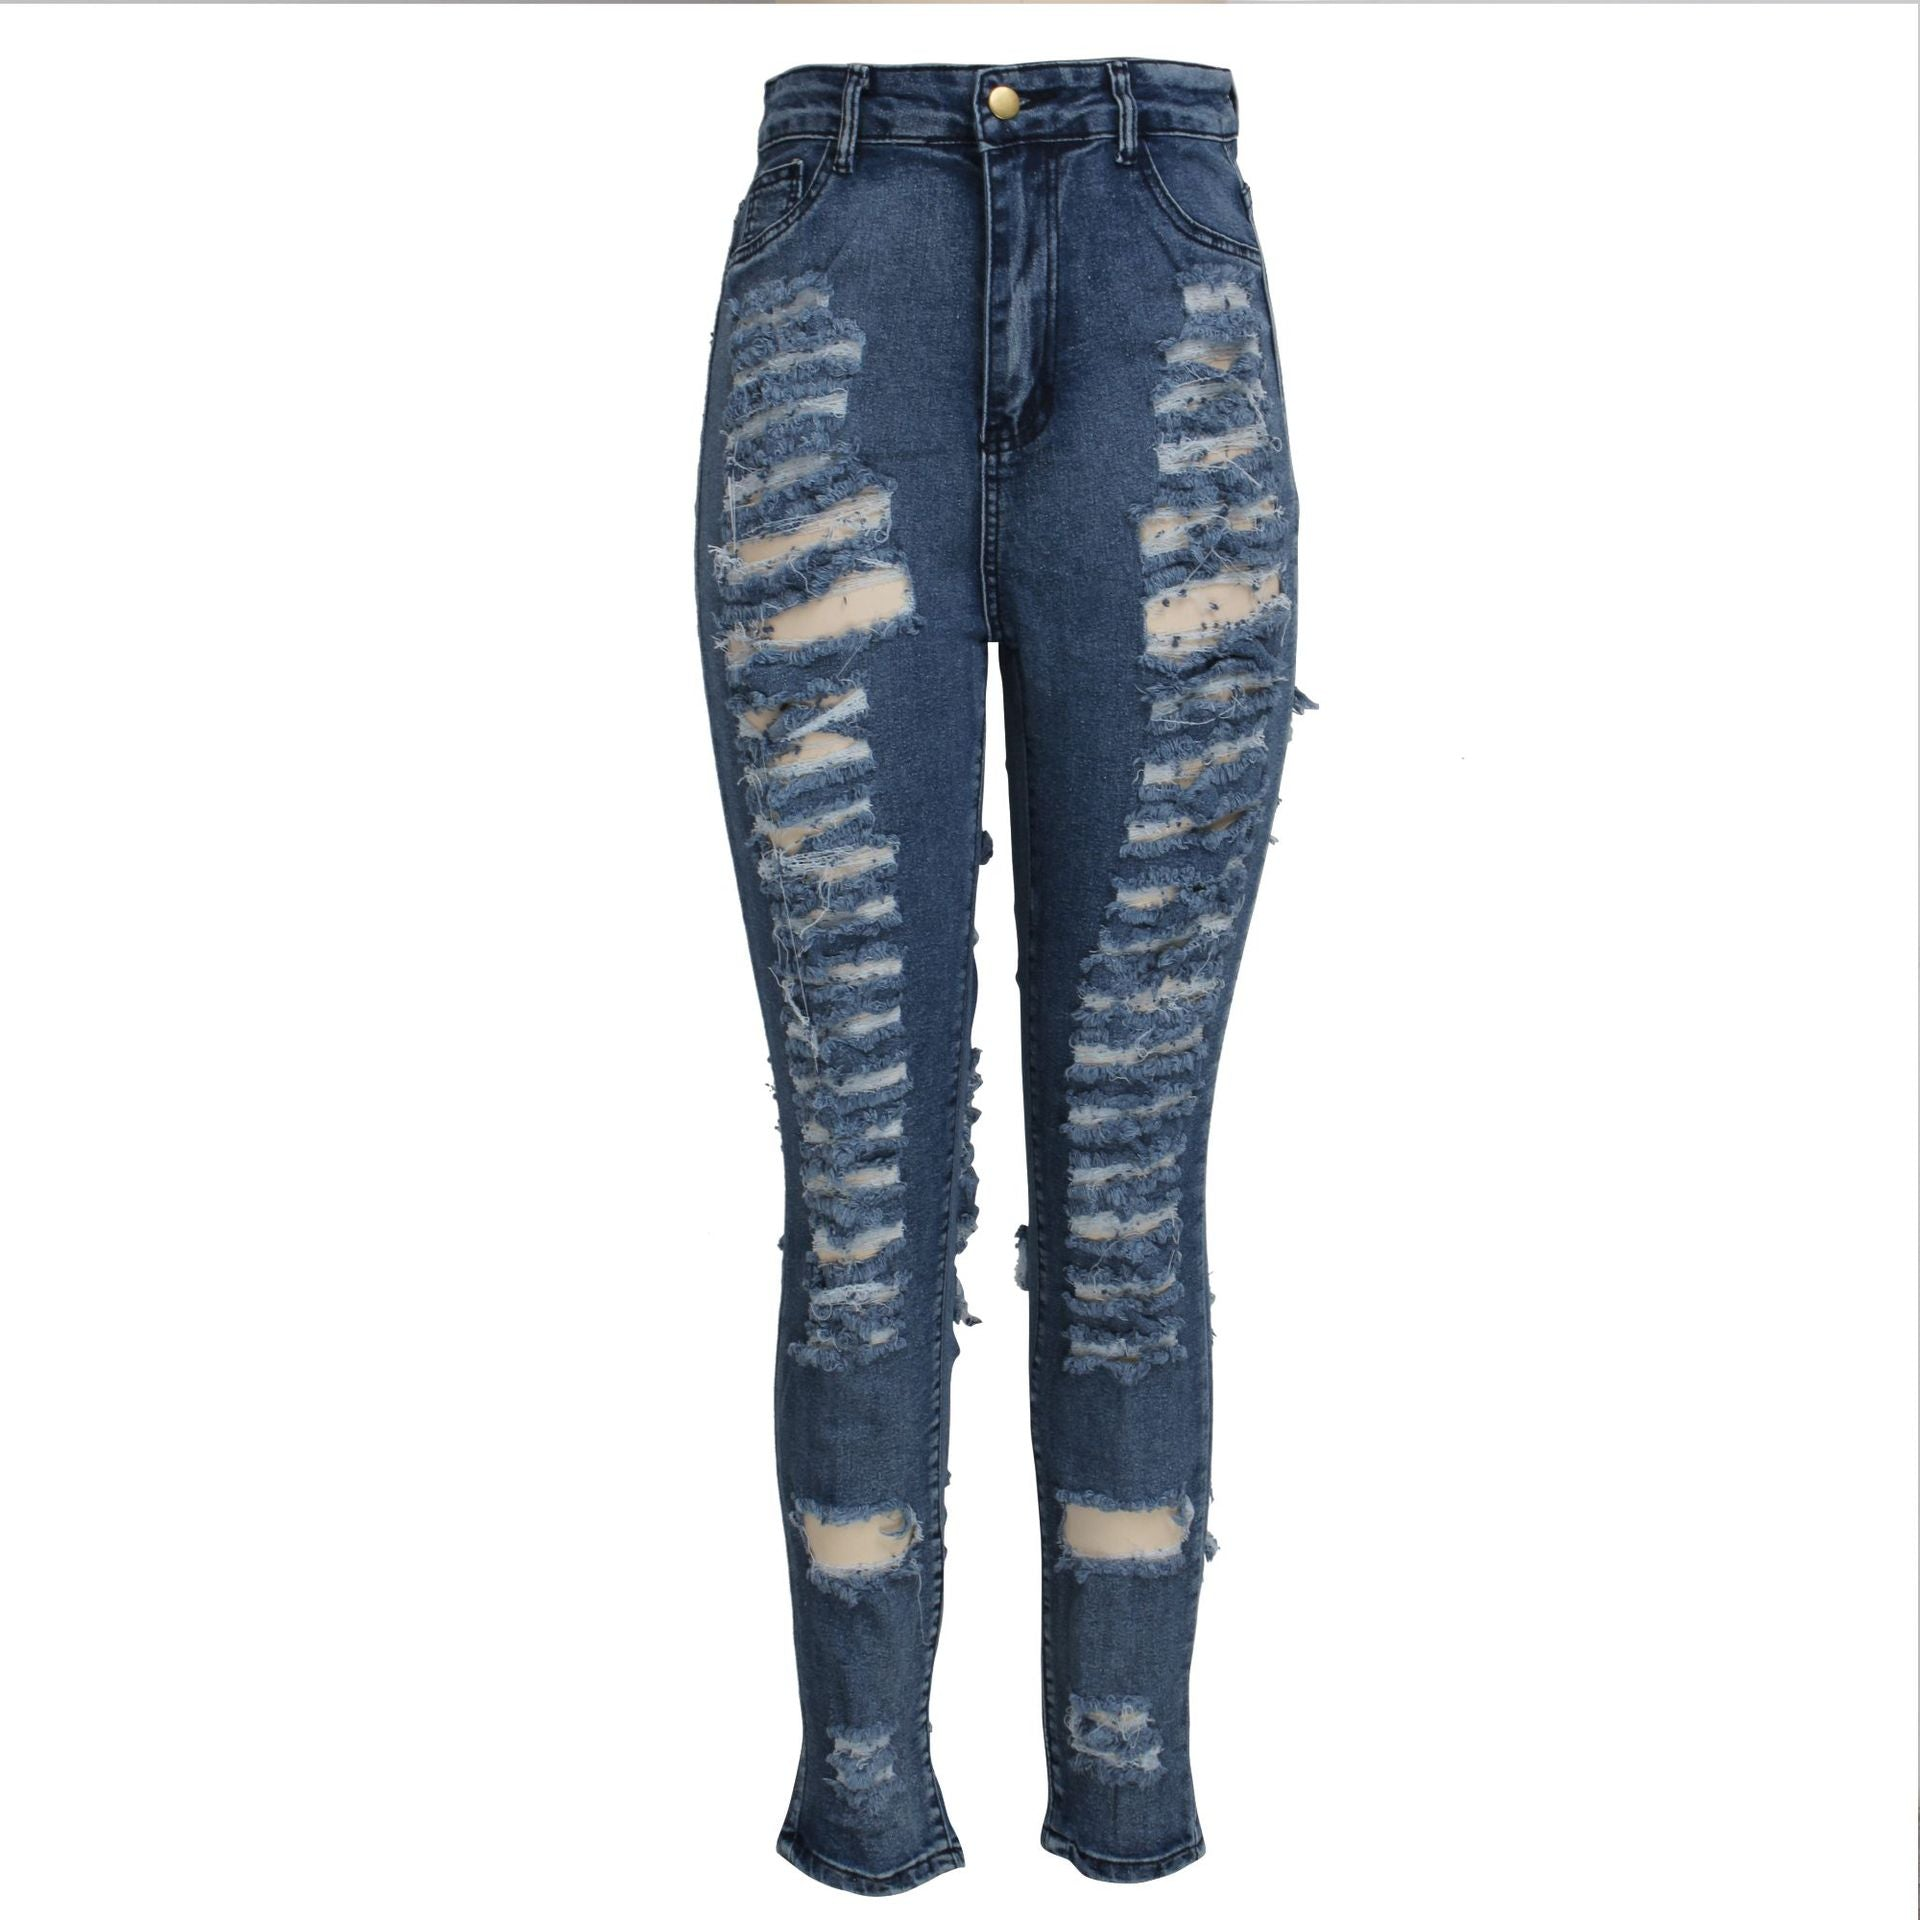 Land of Nostalgia High Waist Distressed Hollow Out Ripped Pants Women's Skinny Slim  Denim Stretch Jeans